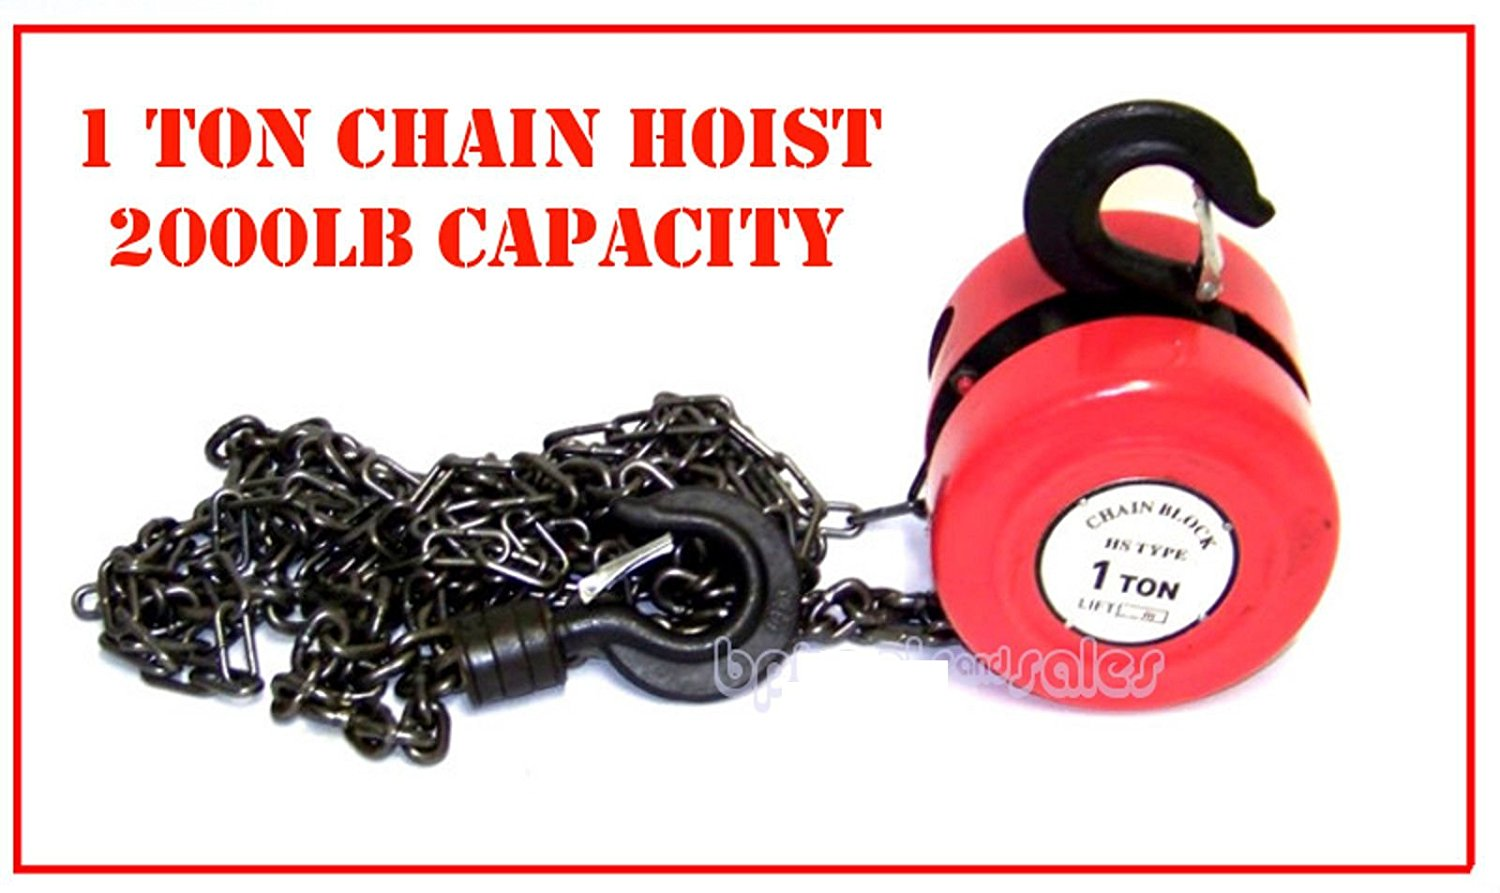 Capacity  8 Chain Hoist 1 Ton 2,000 lb Performance Tool W4005DB Manual Hoist with 2 Hooks